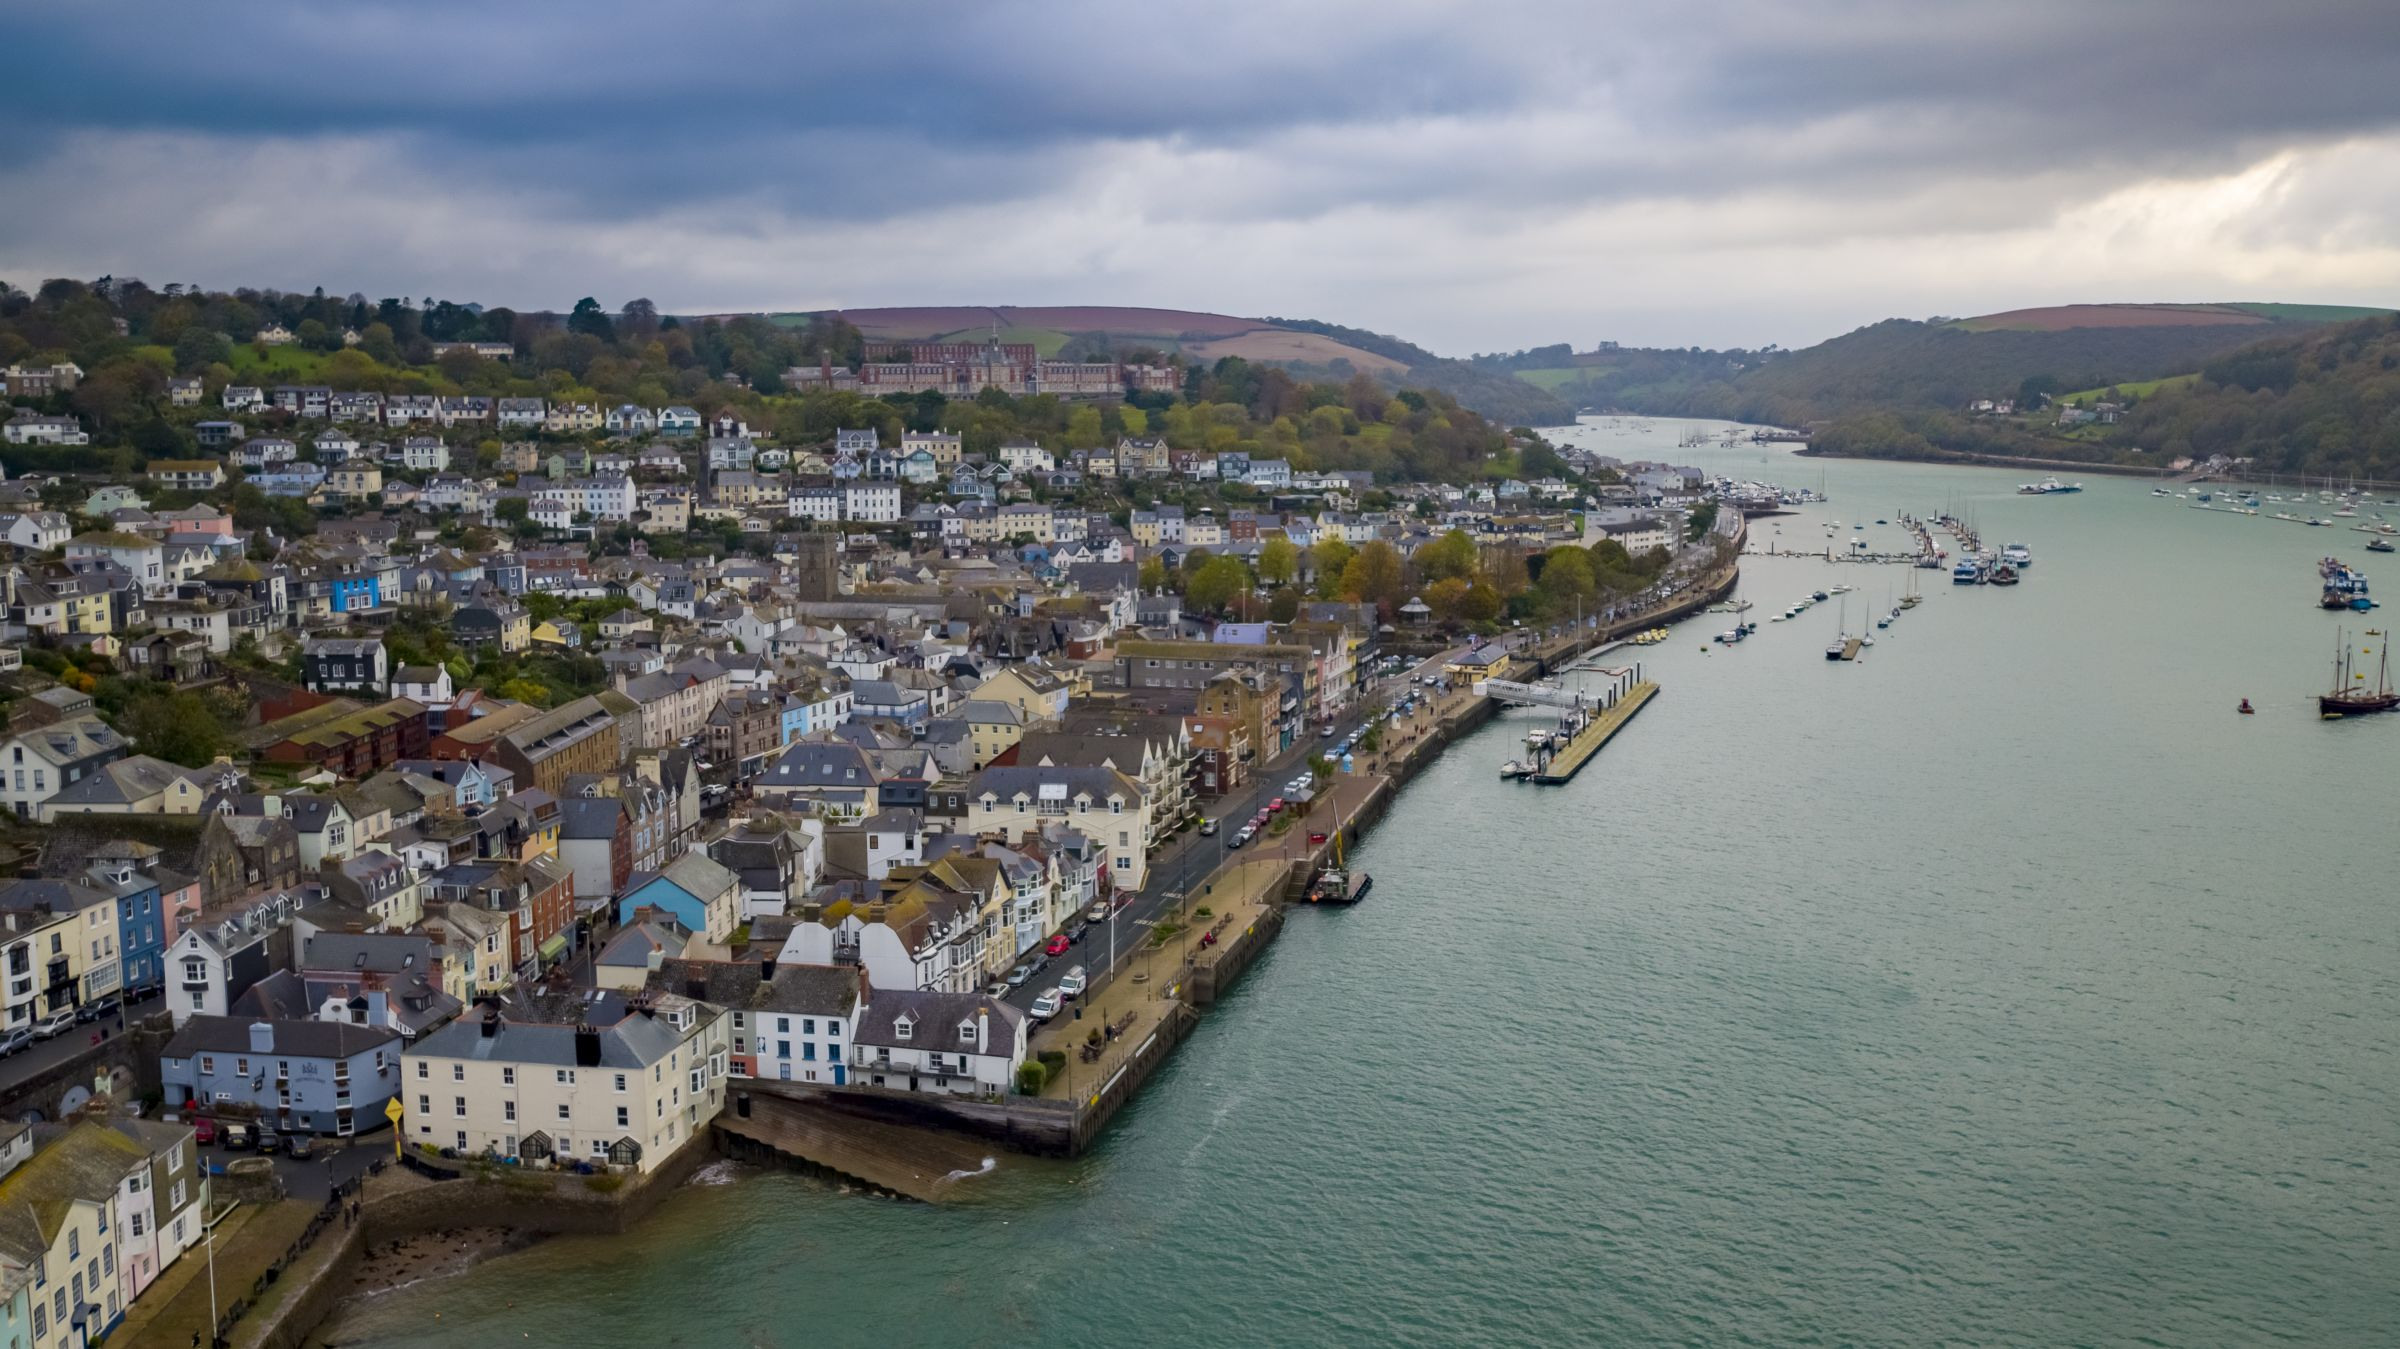 Drone image featuring Dartmouth Harbour. Fishing boats in the water